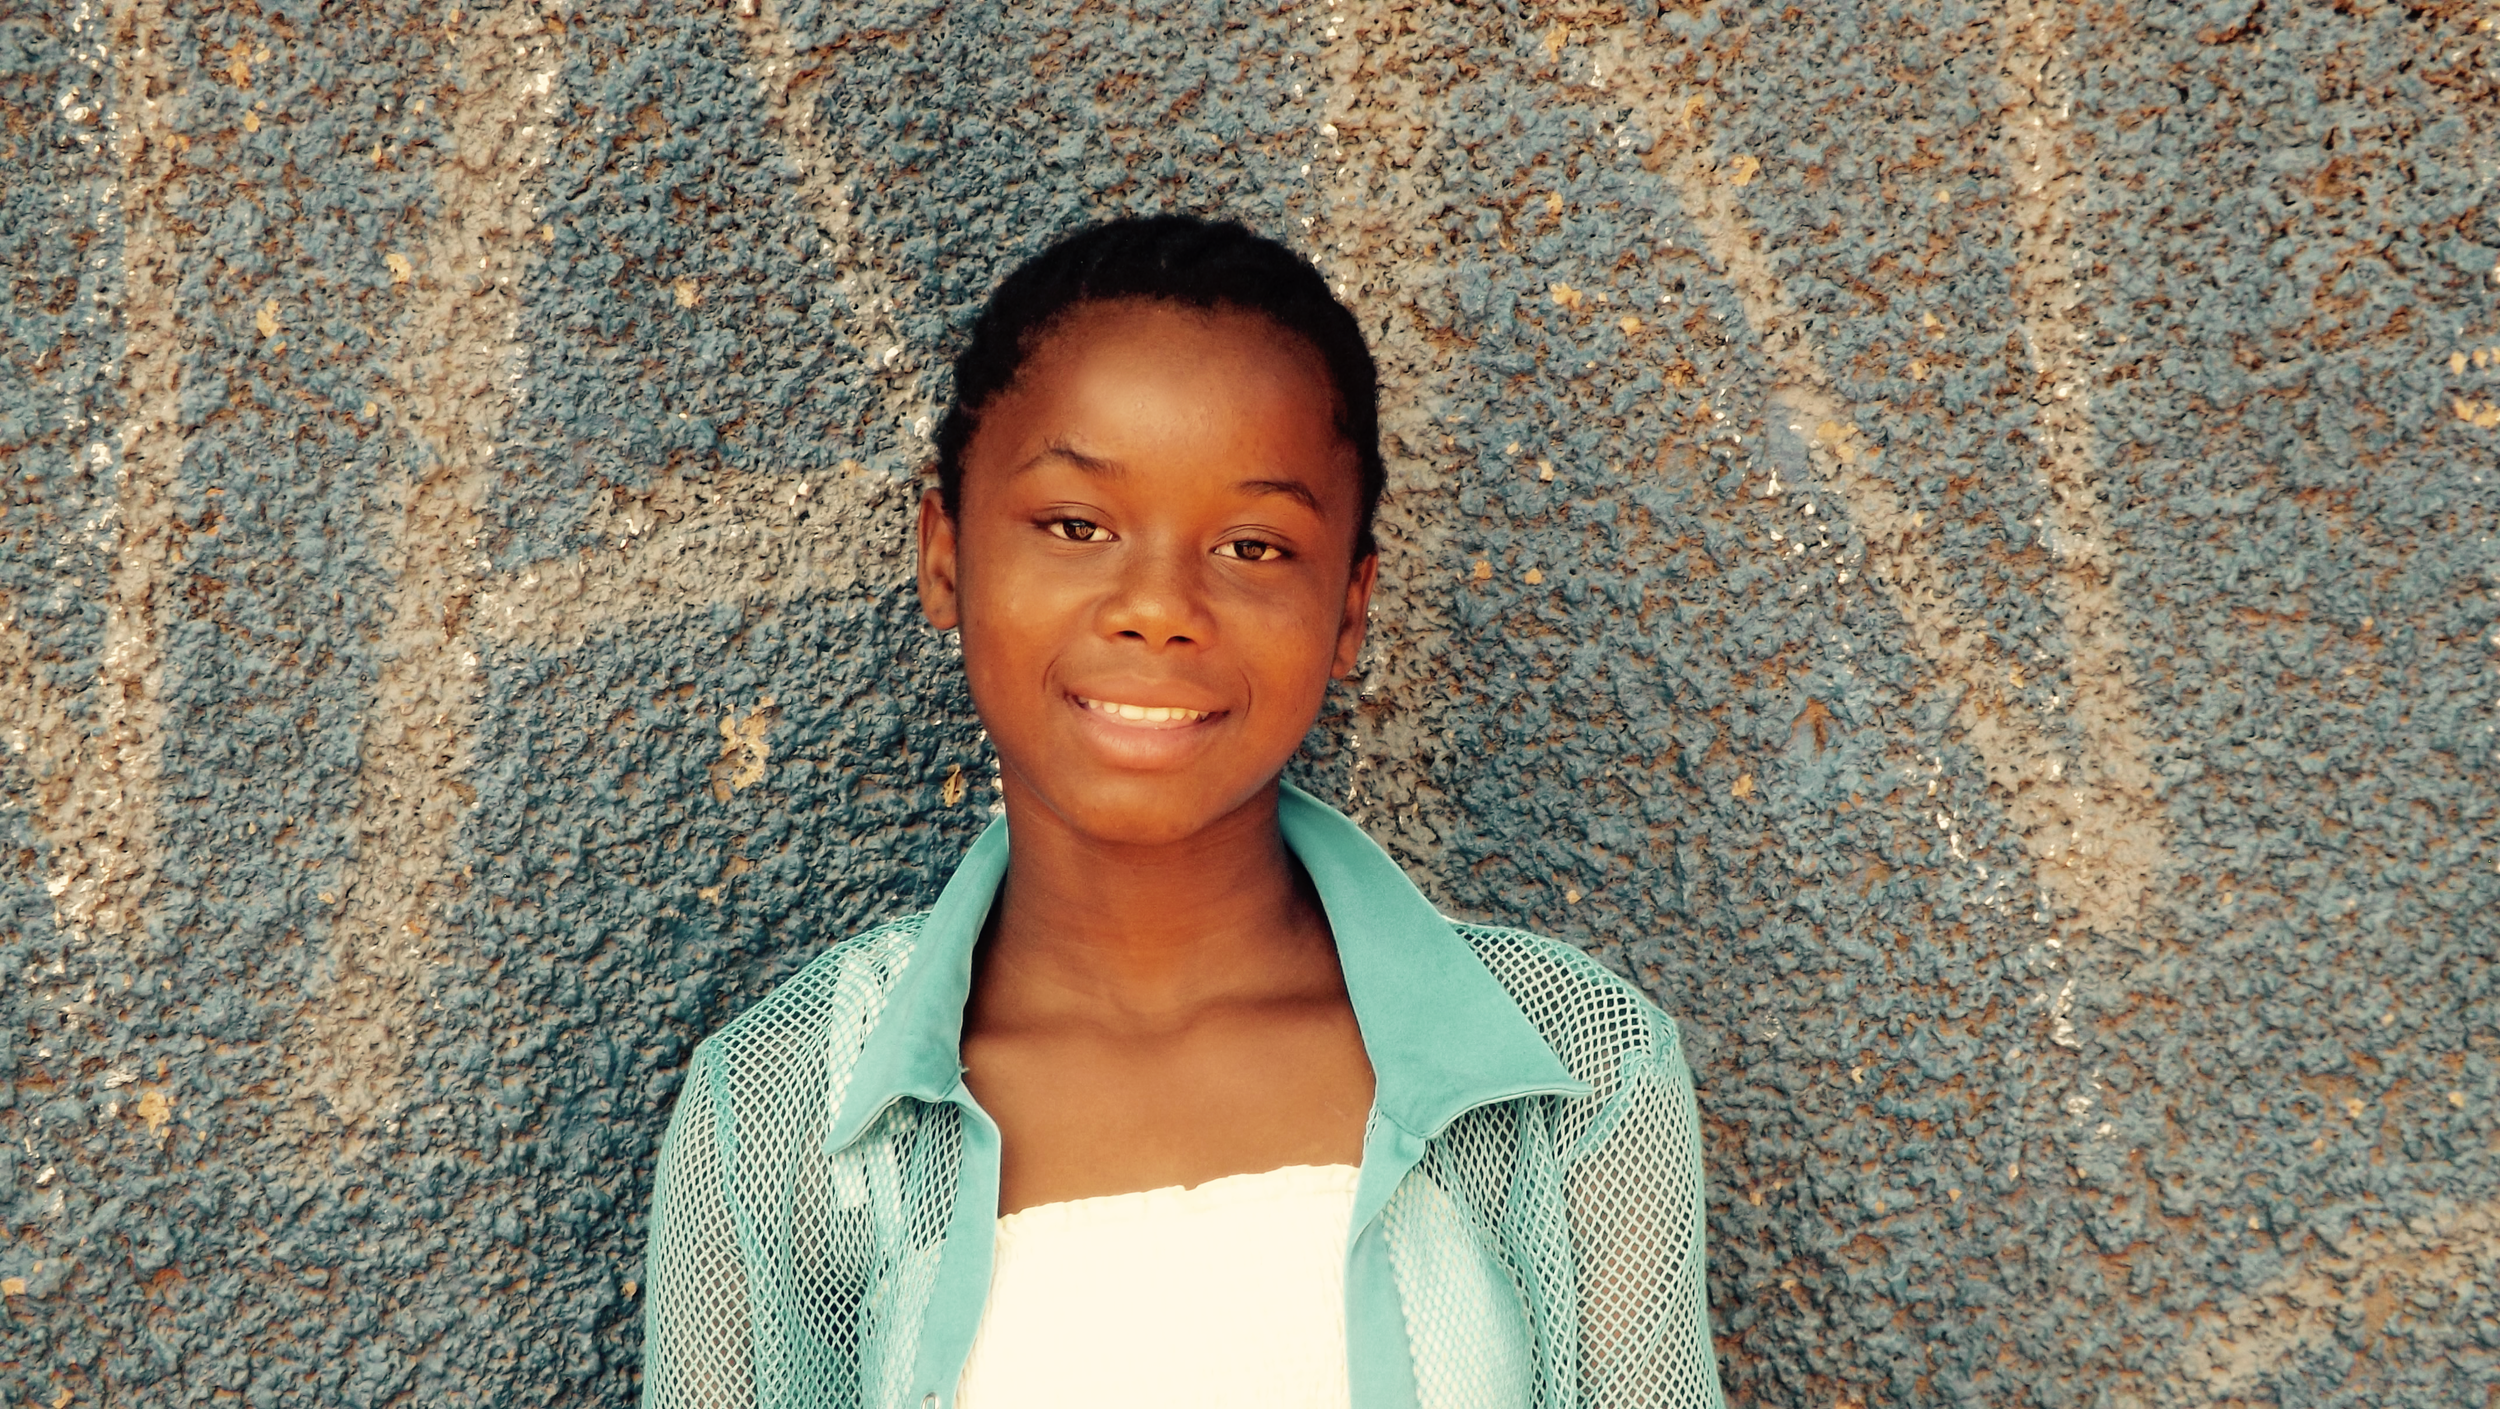 Because every girl has the power to spark change for the future. -